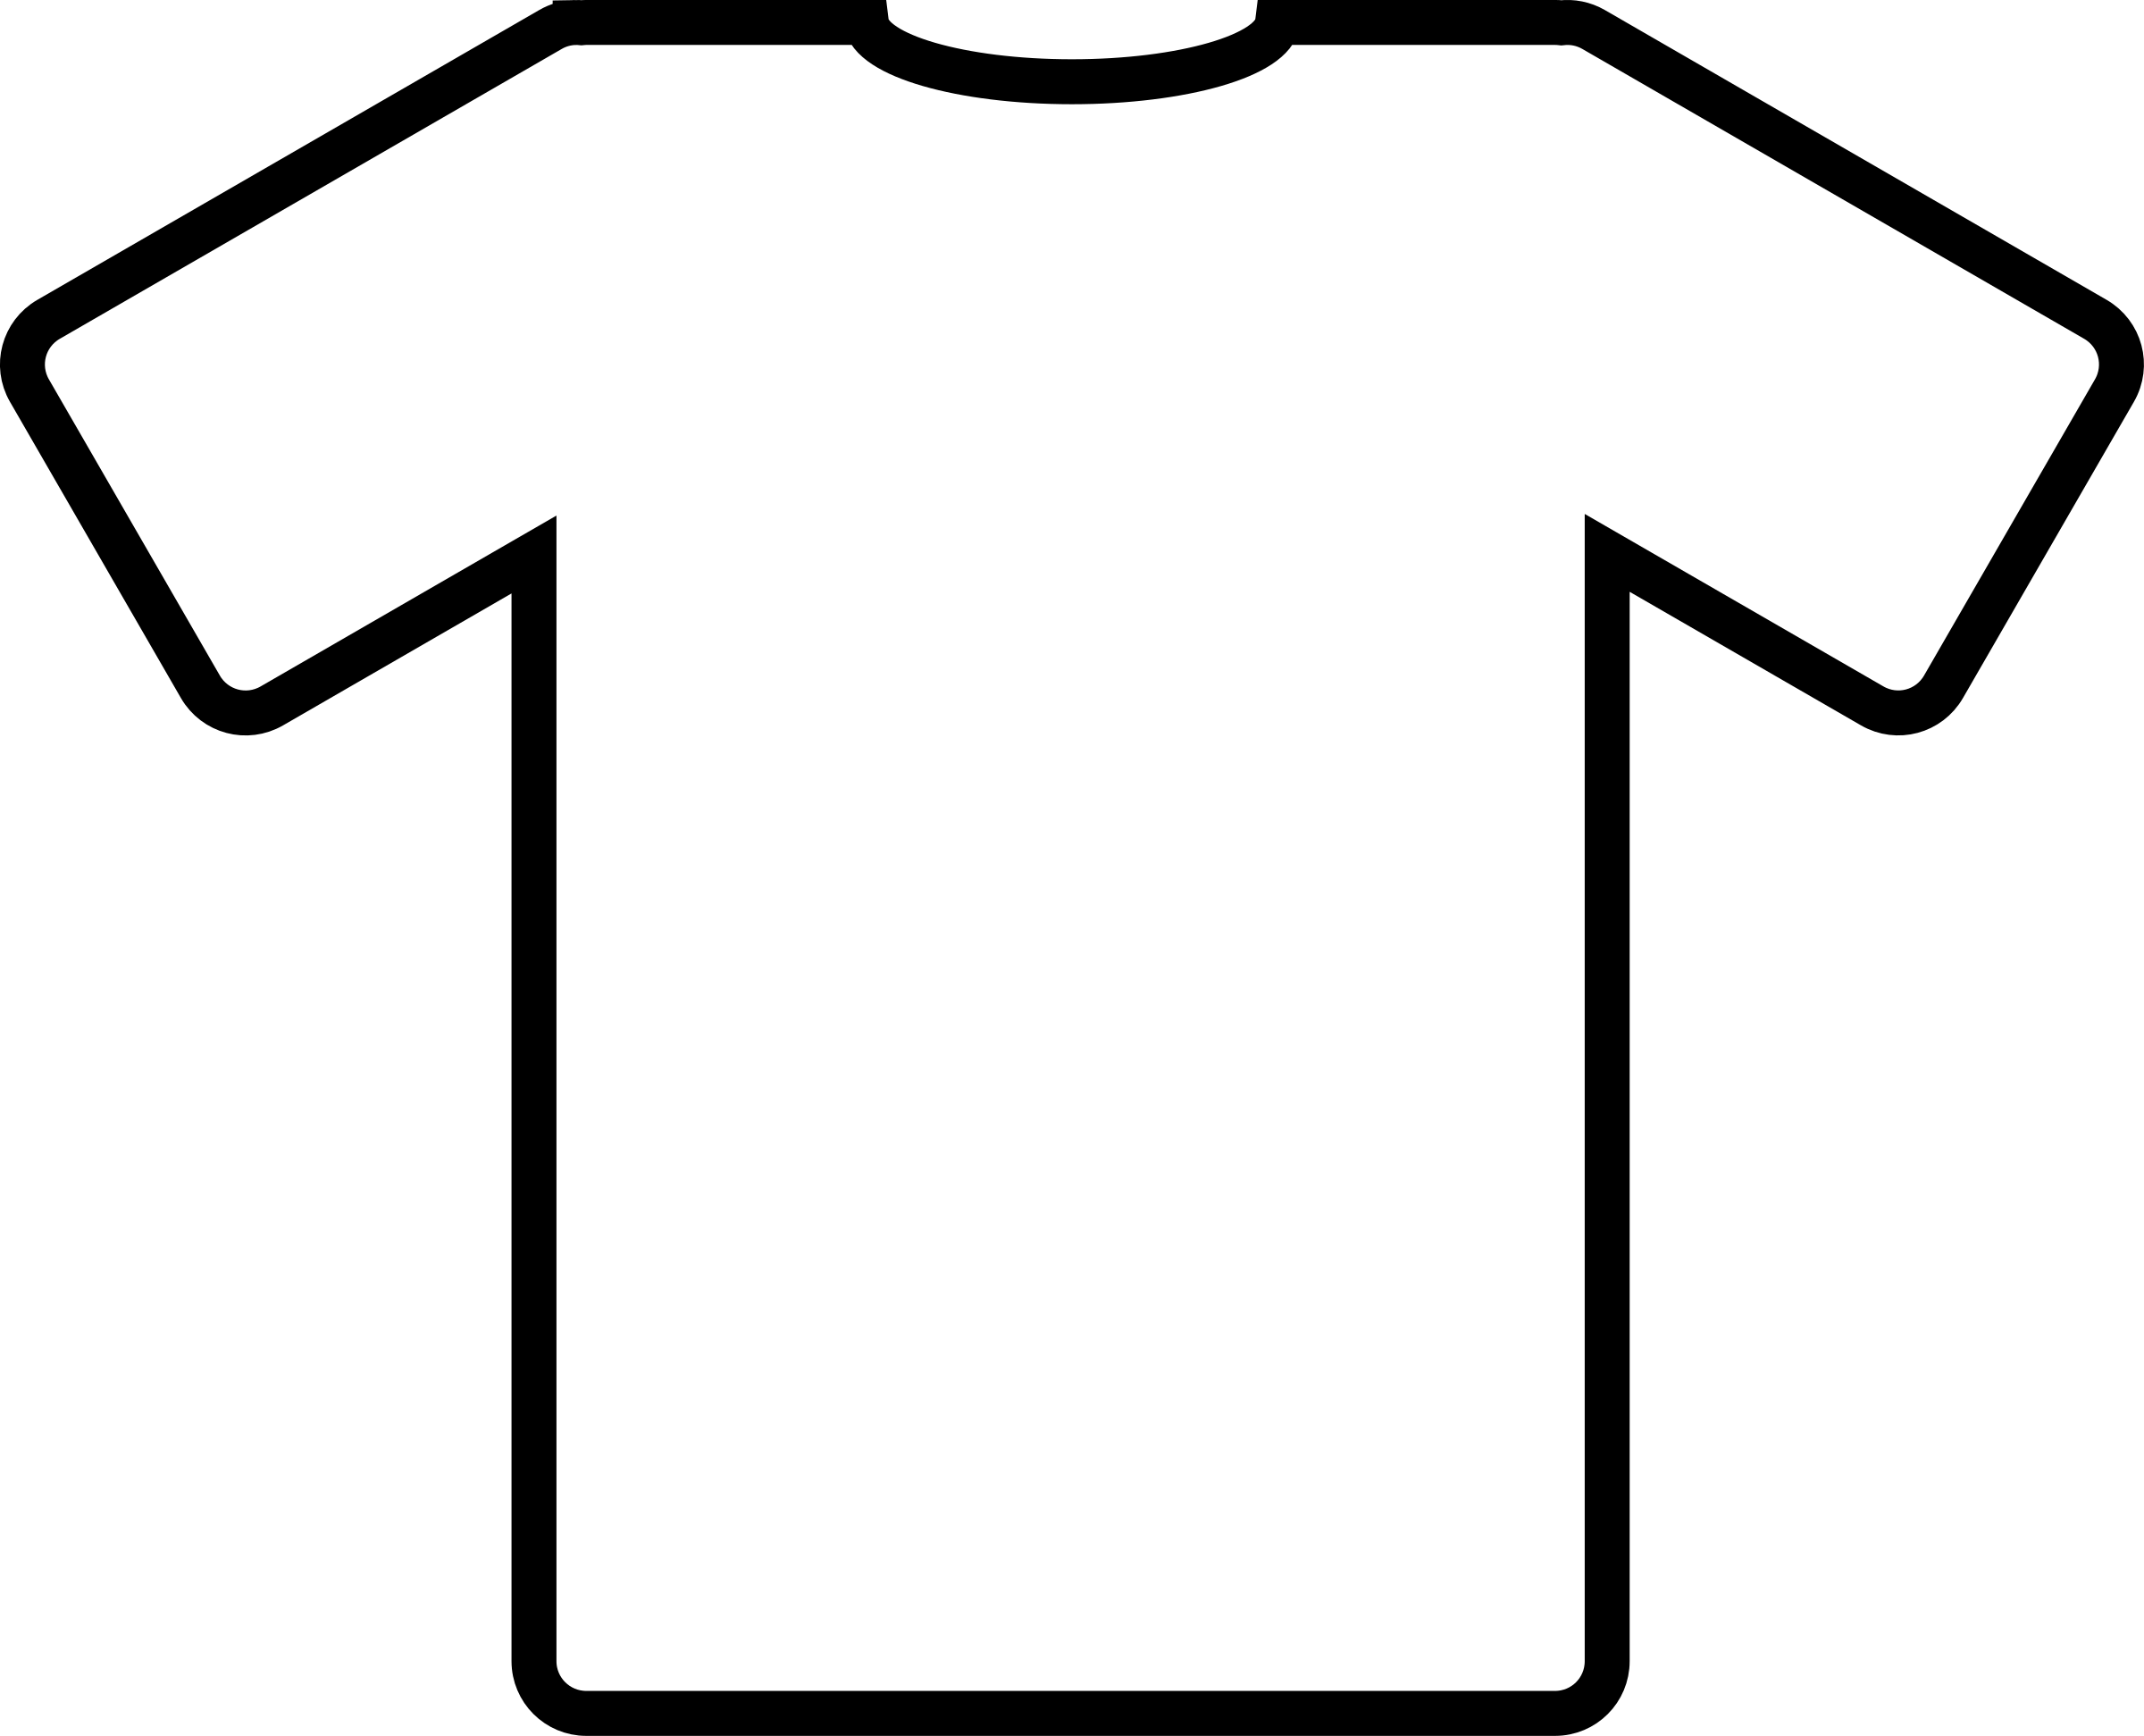 Football jersey clipart. White t shirt big